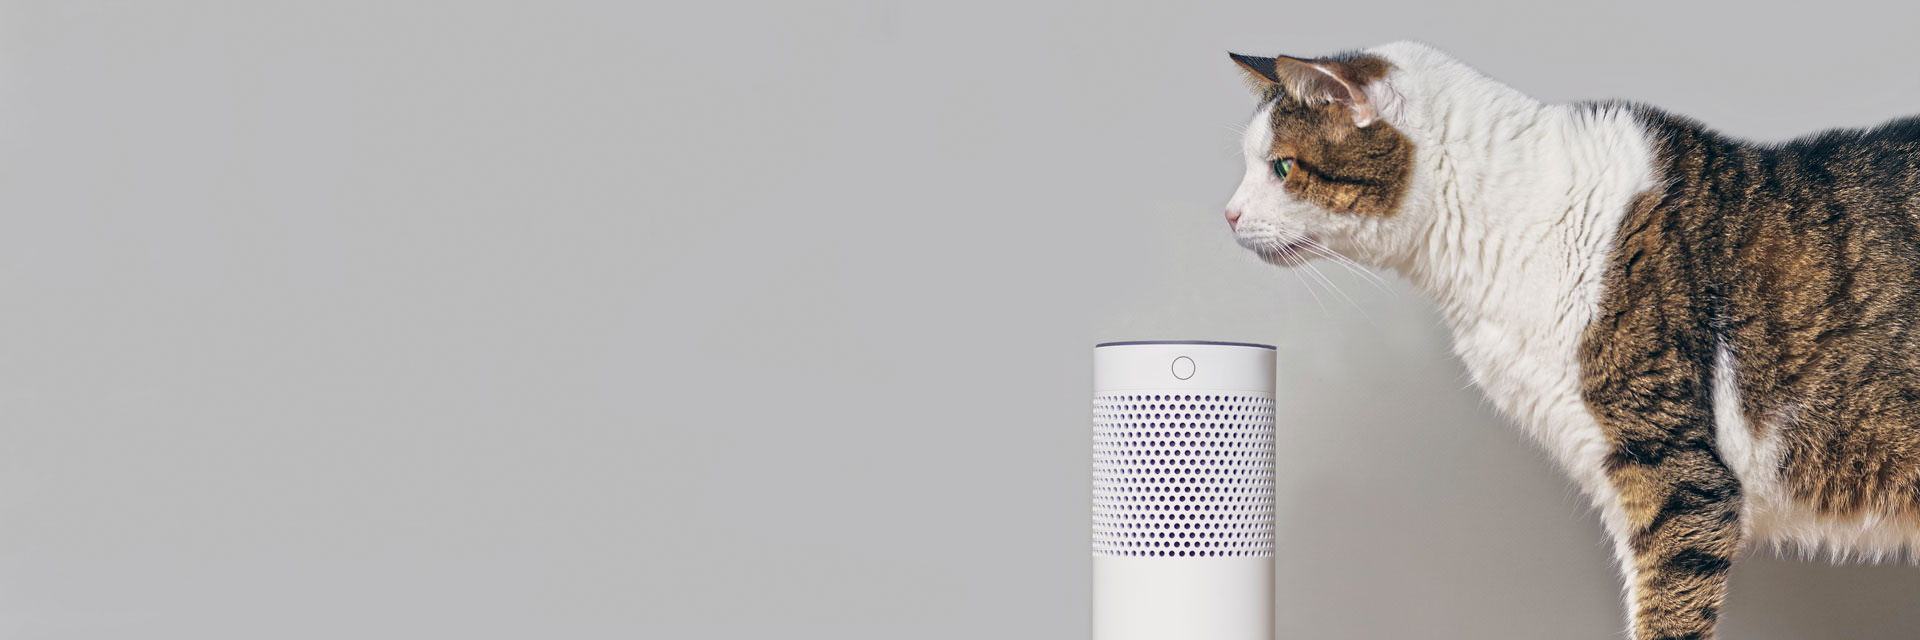 smart-home-katze-1920.jpg